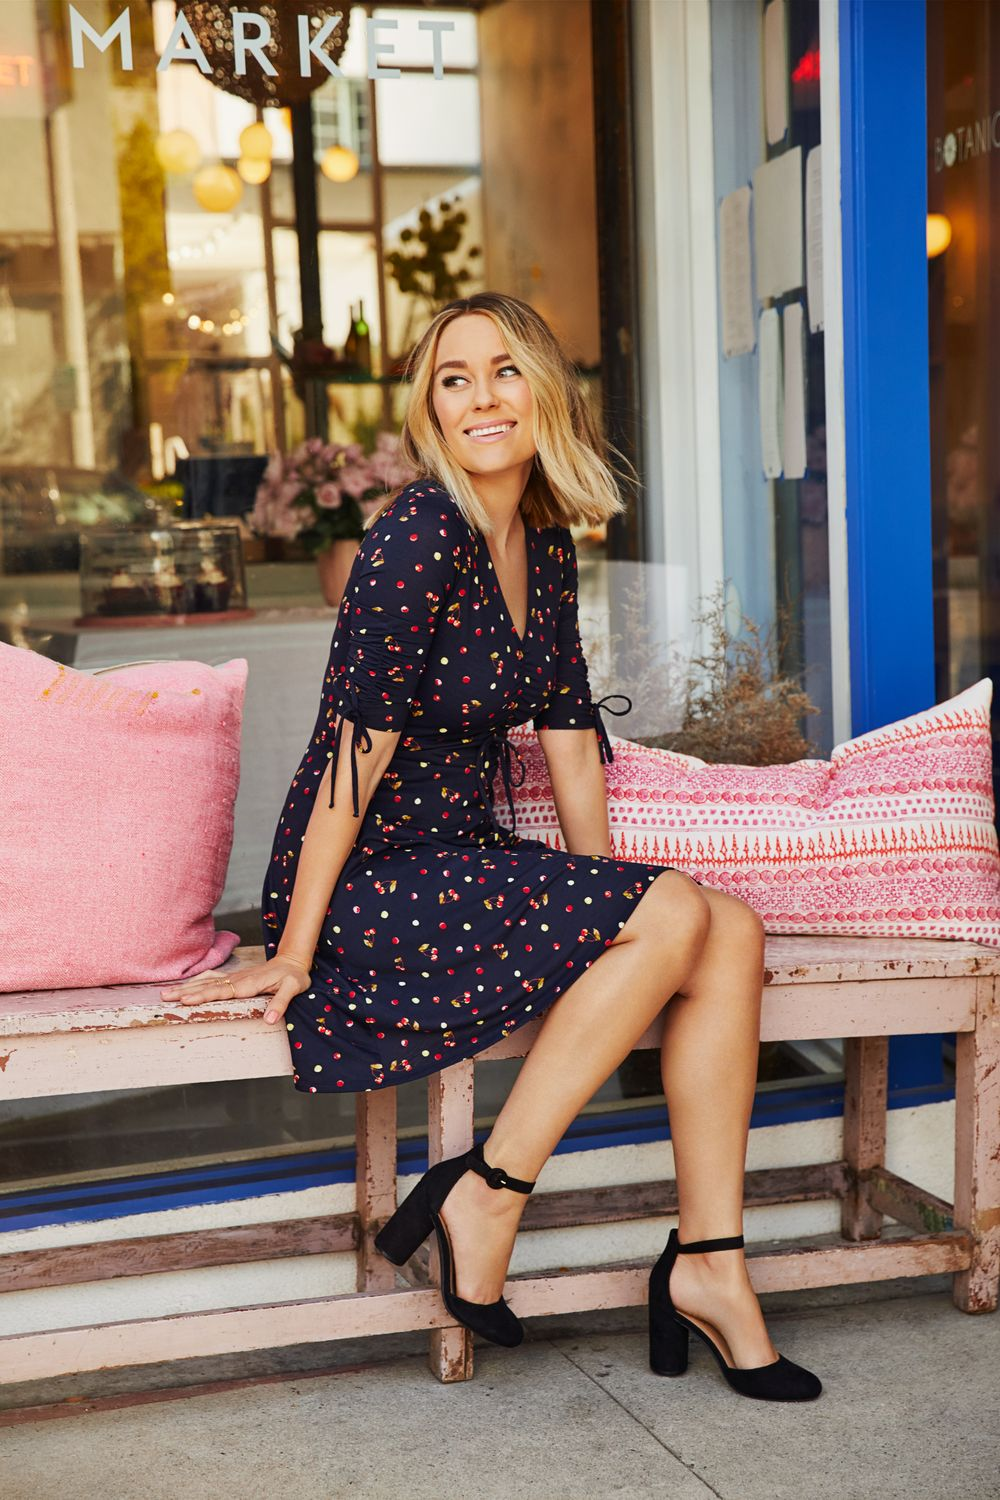 a5e14fe7db57 Lauren Conrad wearing an LC Lauren Conrad Printed Fit   Flare Dress from the  February 2018 Collection available now at Kohl s